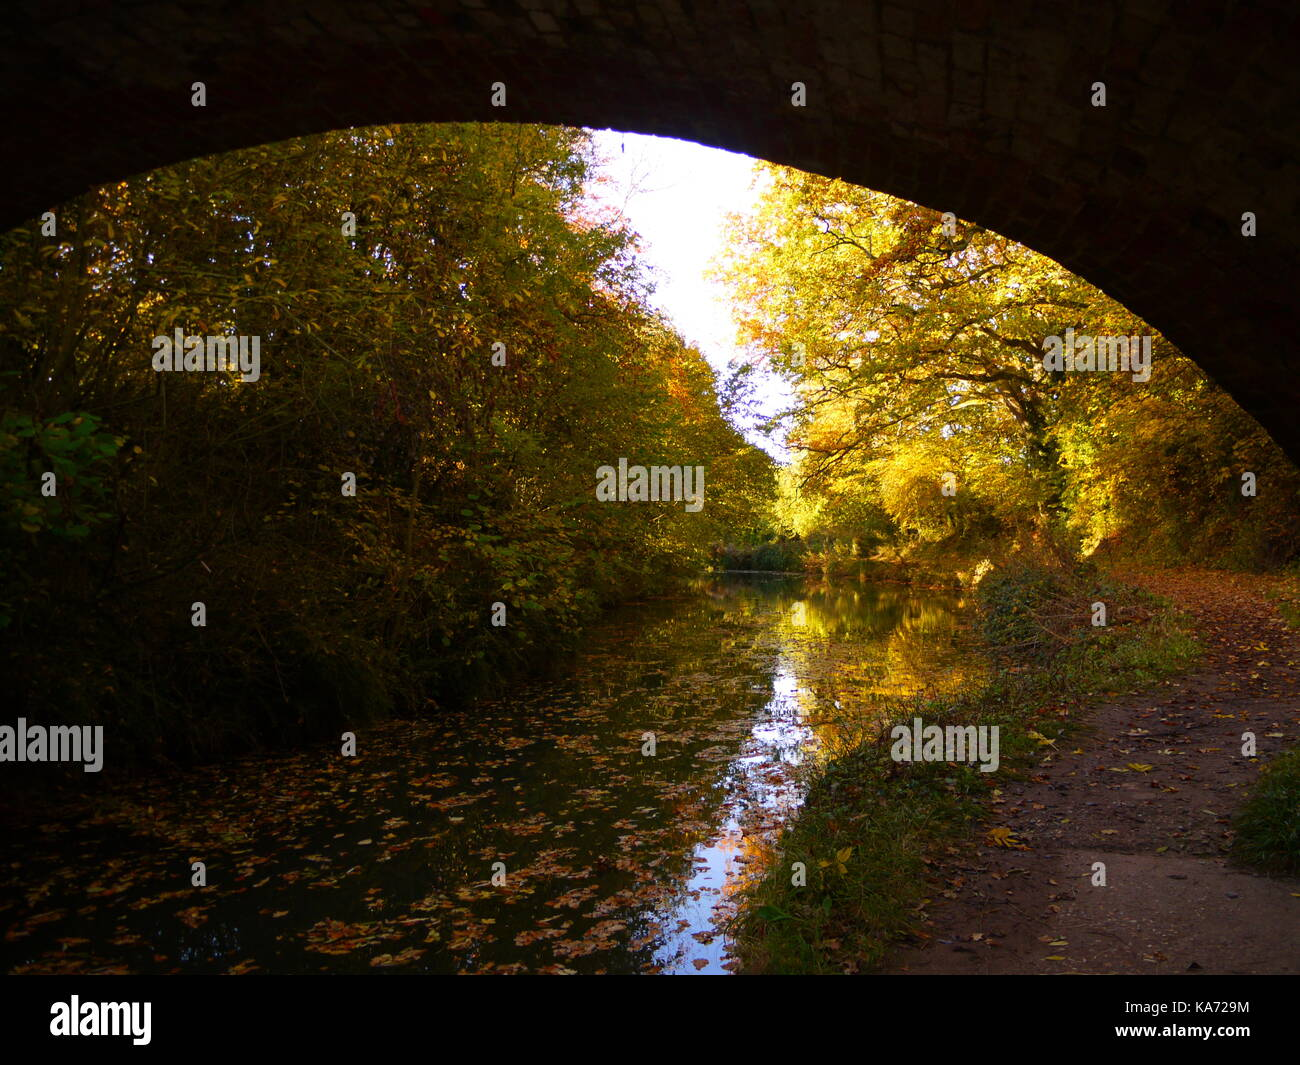 The Basingstoke Canal - Stock Image